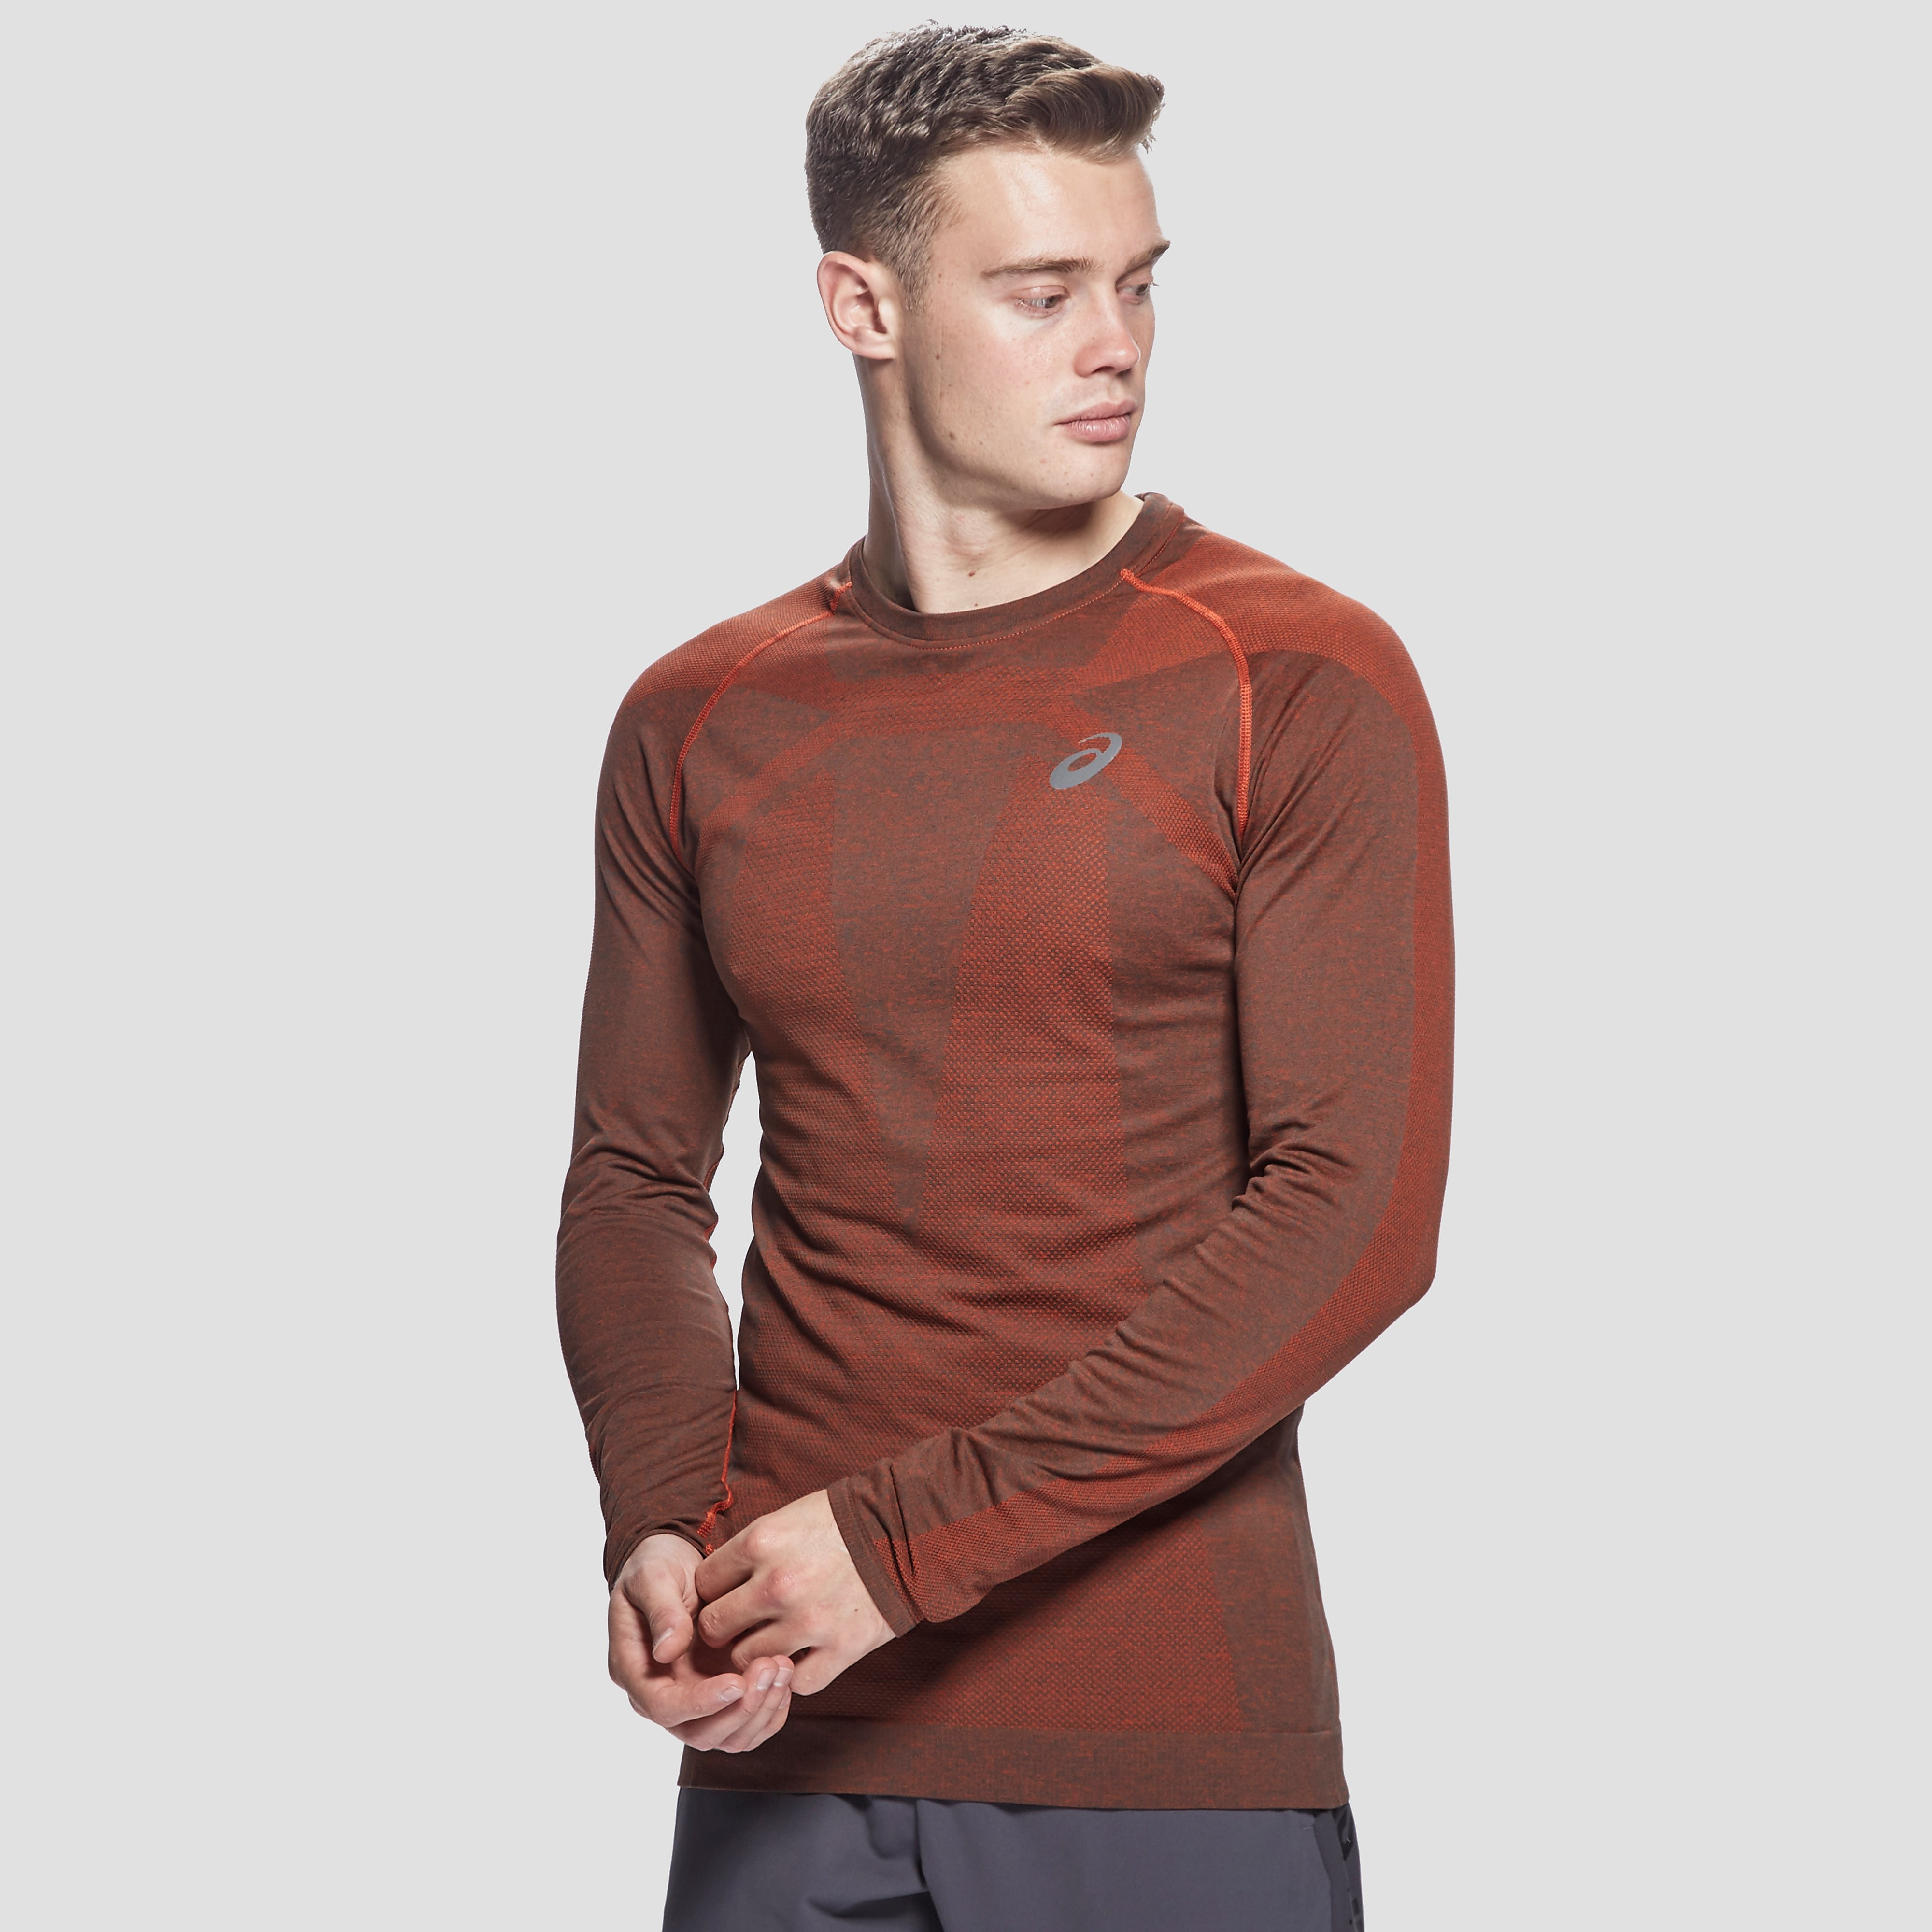 ASICS Men's Long Sleeved Seamless Top